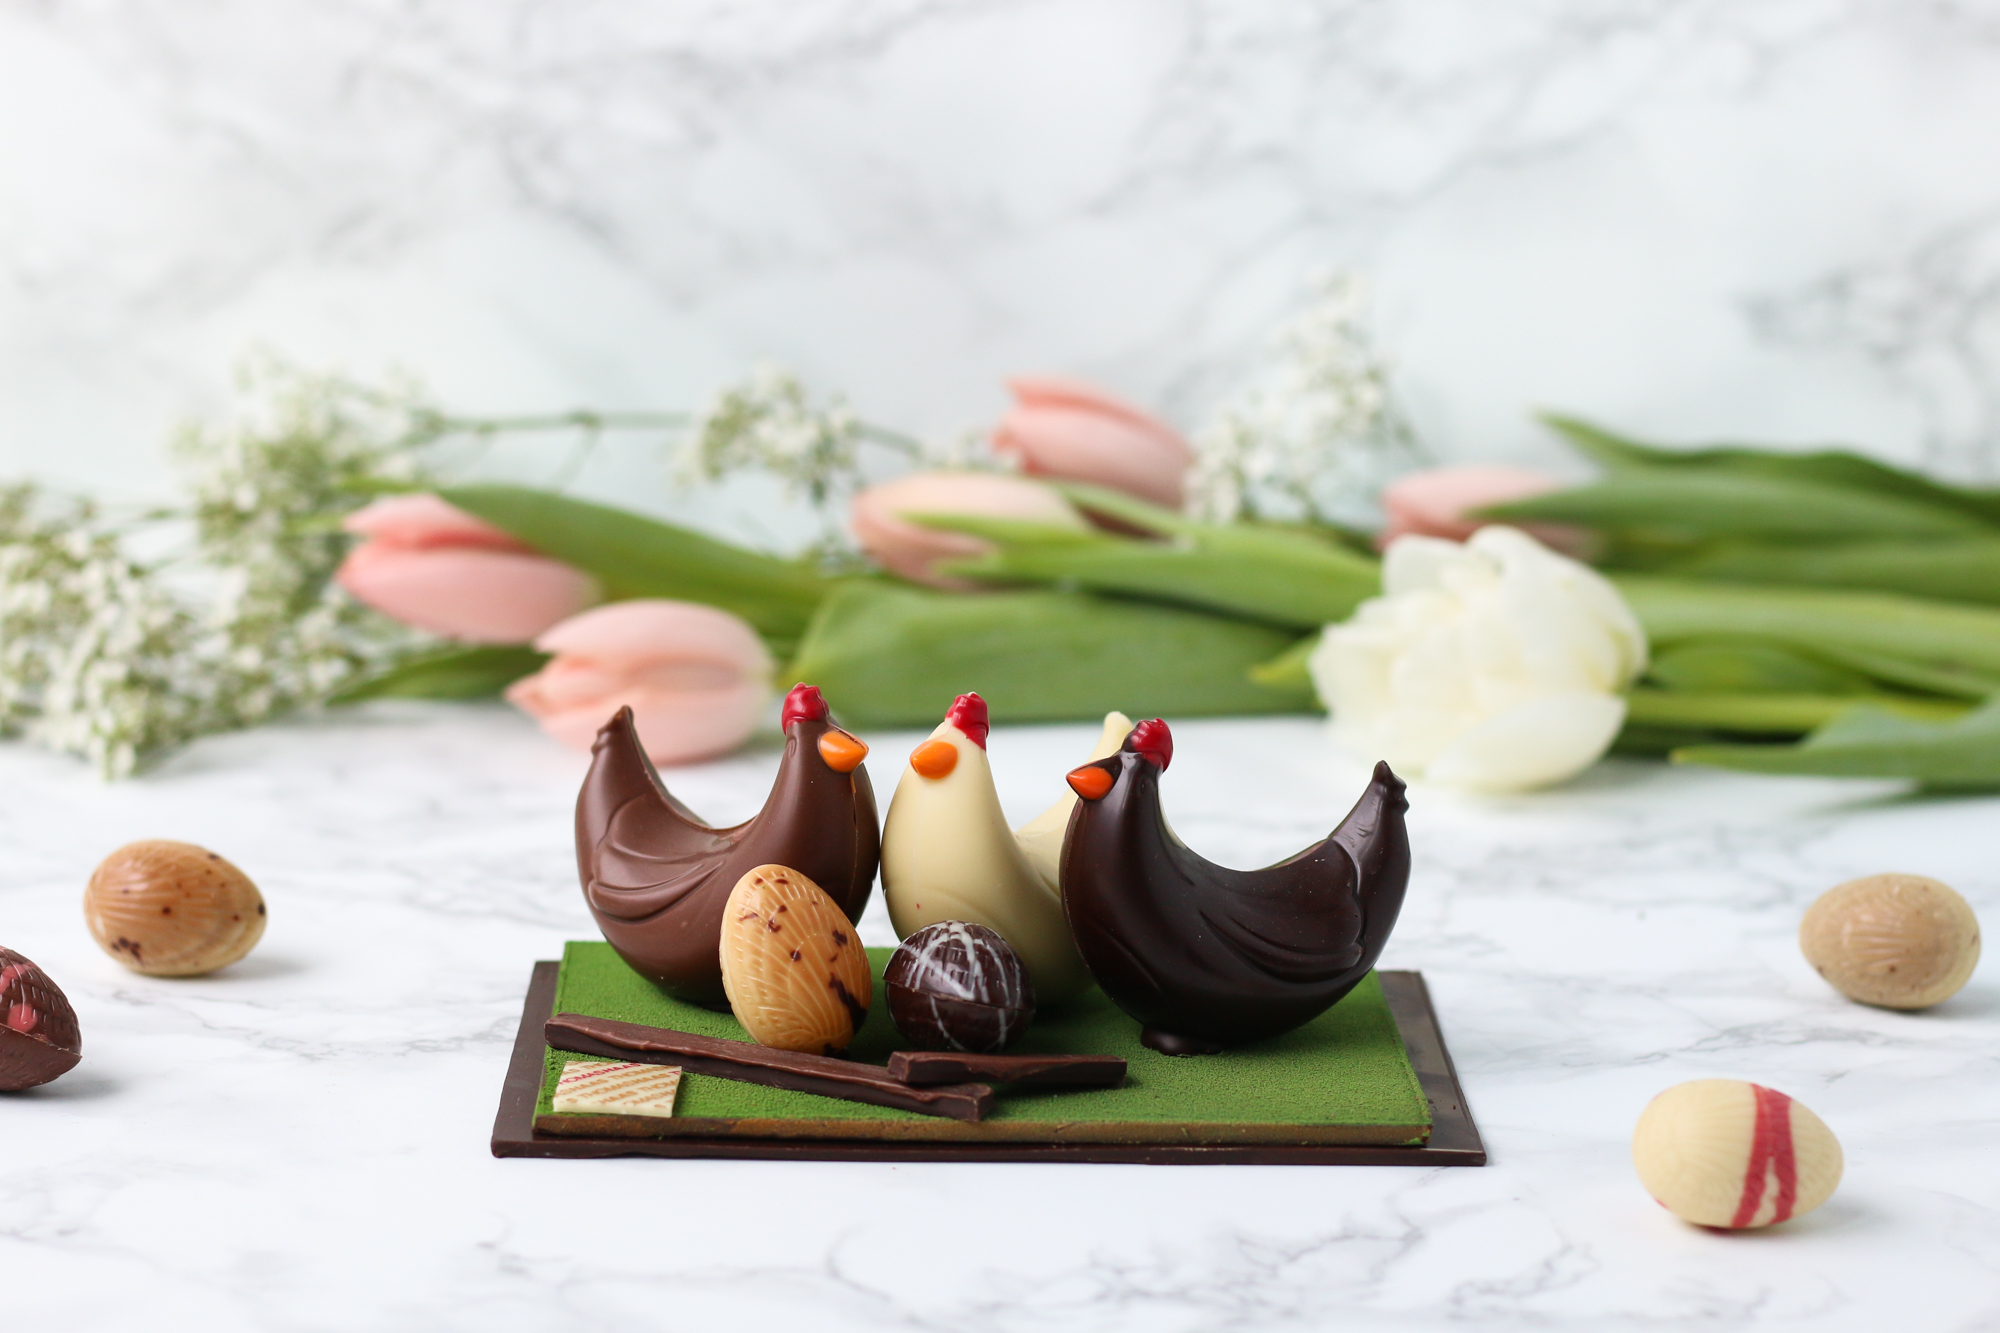 SPRINGTIME SWEETS: CHOCOLATIER THOMAS HAAS UNVEILS LATEST COLLECTION OF EASTER-THEMED CONFECTIONS